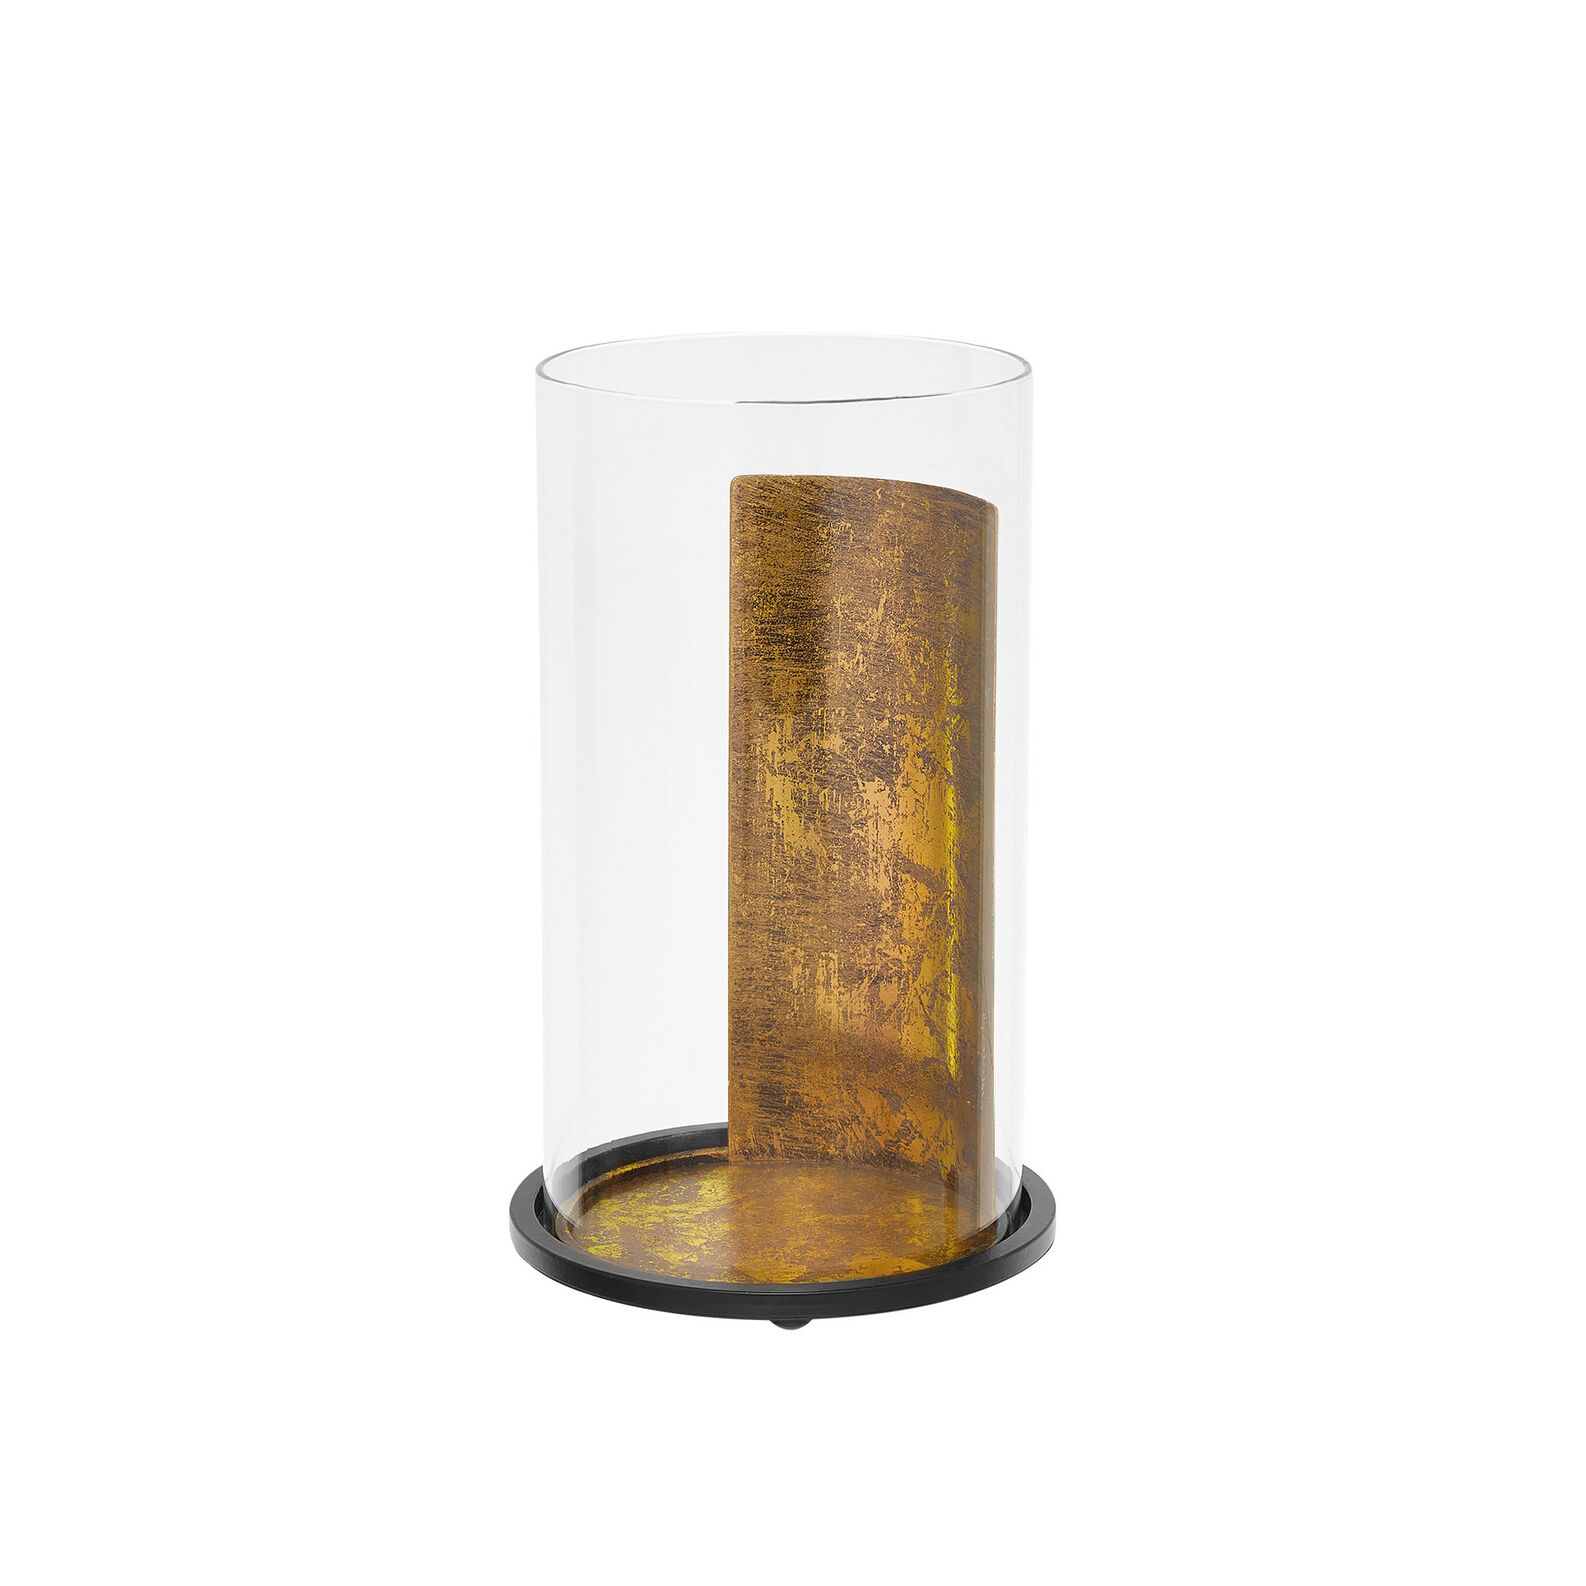 Glass and metal windproof candle